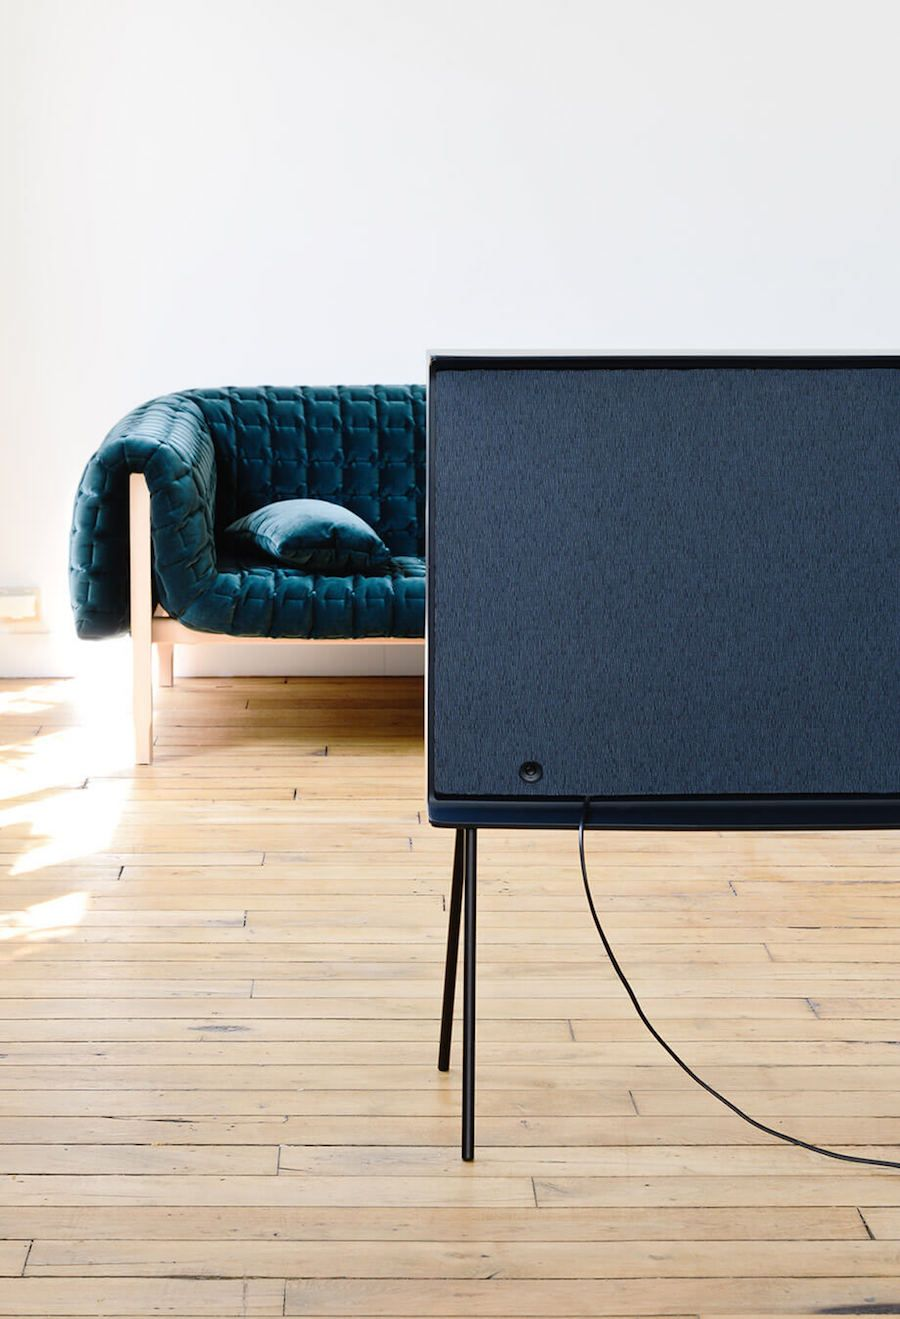 Serif Tv By Ronan And Erwan Bouroullec Product Design  # Meuble Tv Murale Meuble Tv Murale Design Ronna Mobilo Design